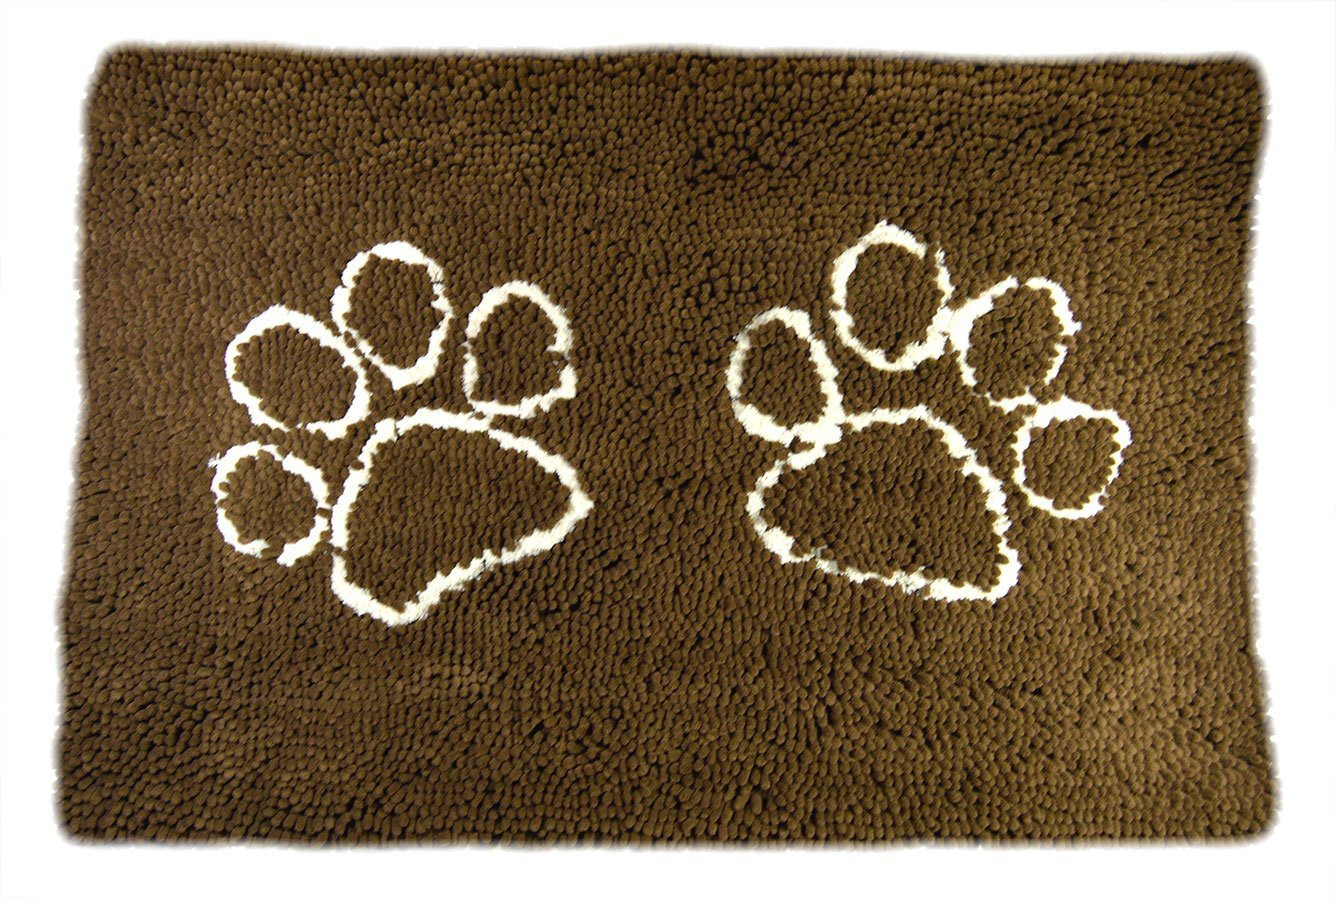 My Doggy Place - Ultra Absorbent Microfiber Dog Door Mat, Durable, Quick Drying, Washable, Prevent Mud Dirt, Keep Your House Clean (Brown w/ Paw Print, Runner) - 60 x 36 inch by My Doggy Place (Image #2)